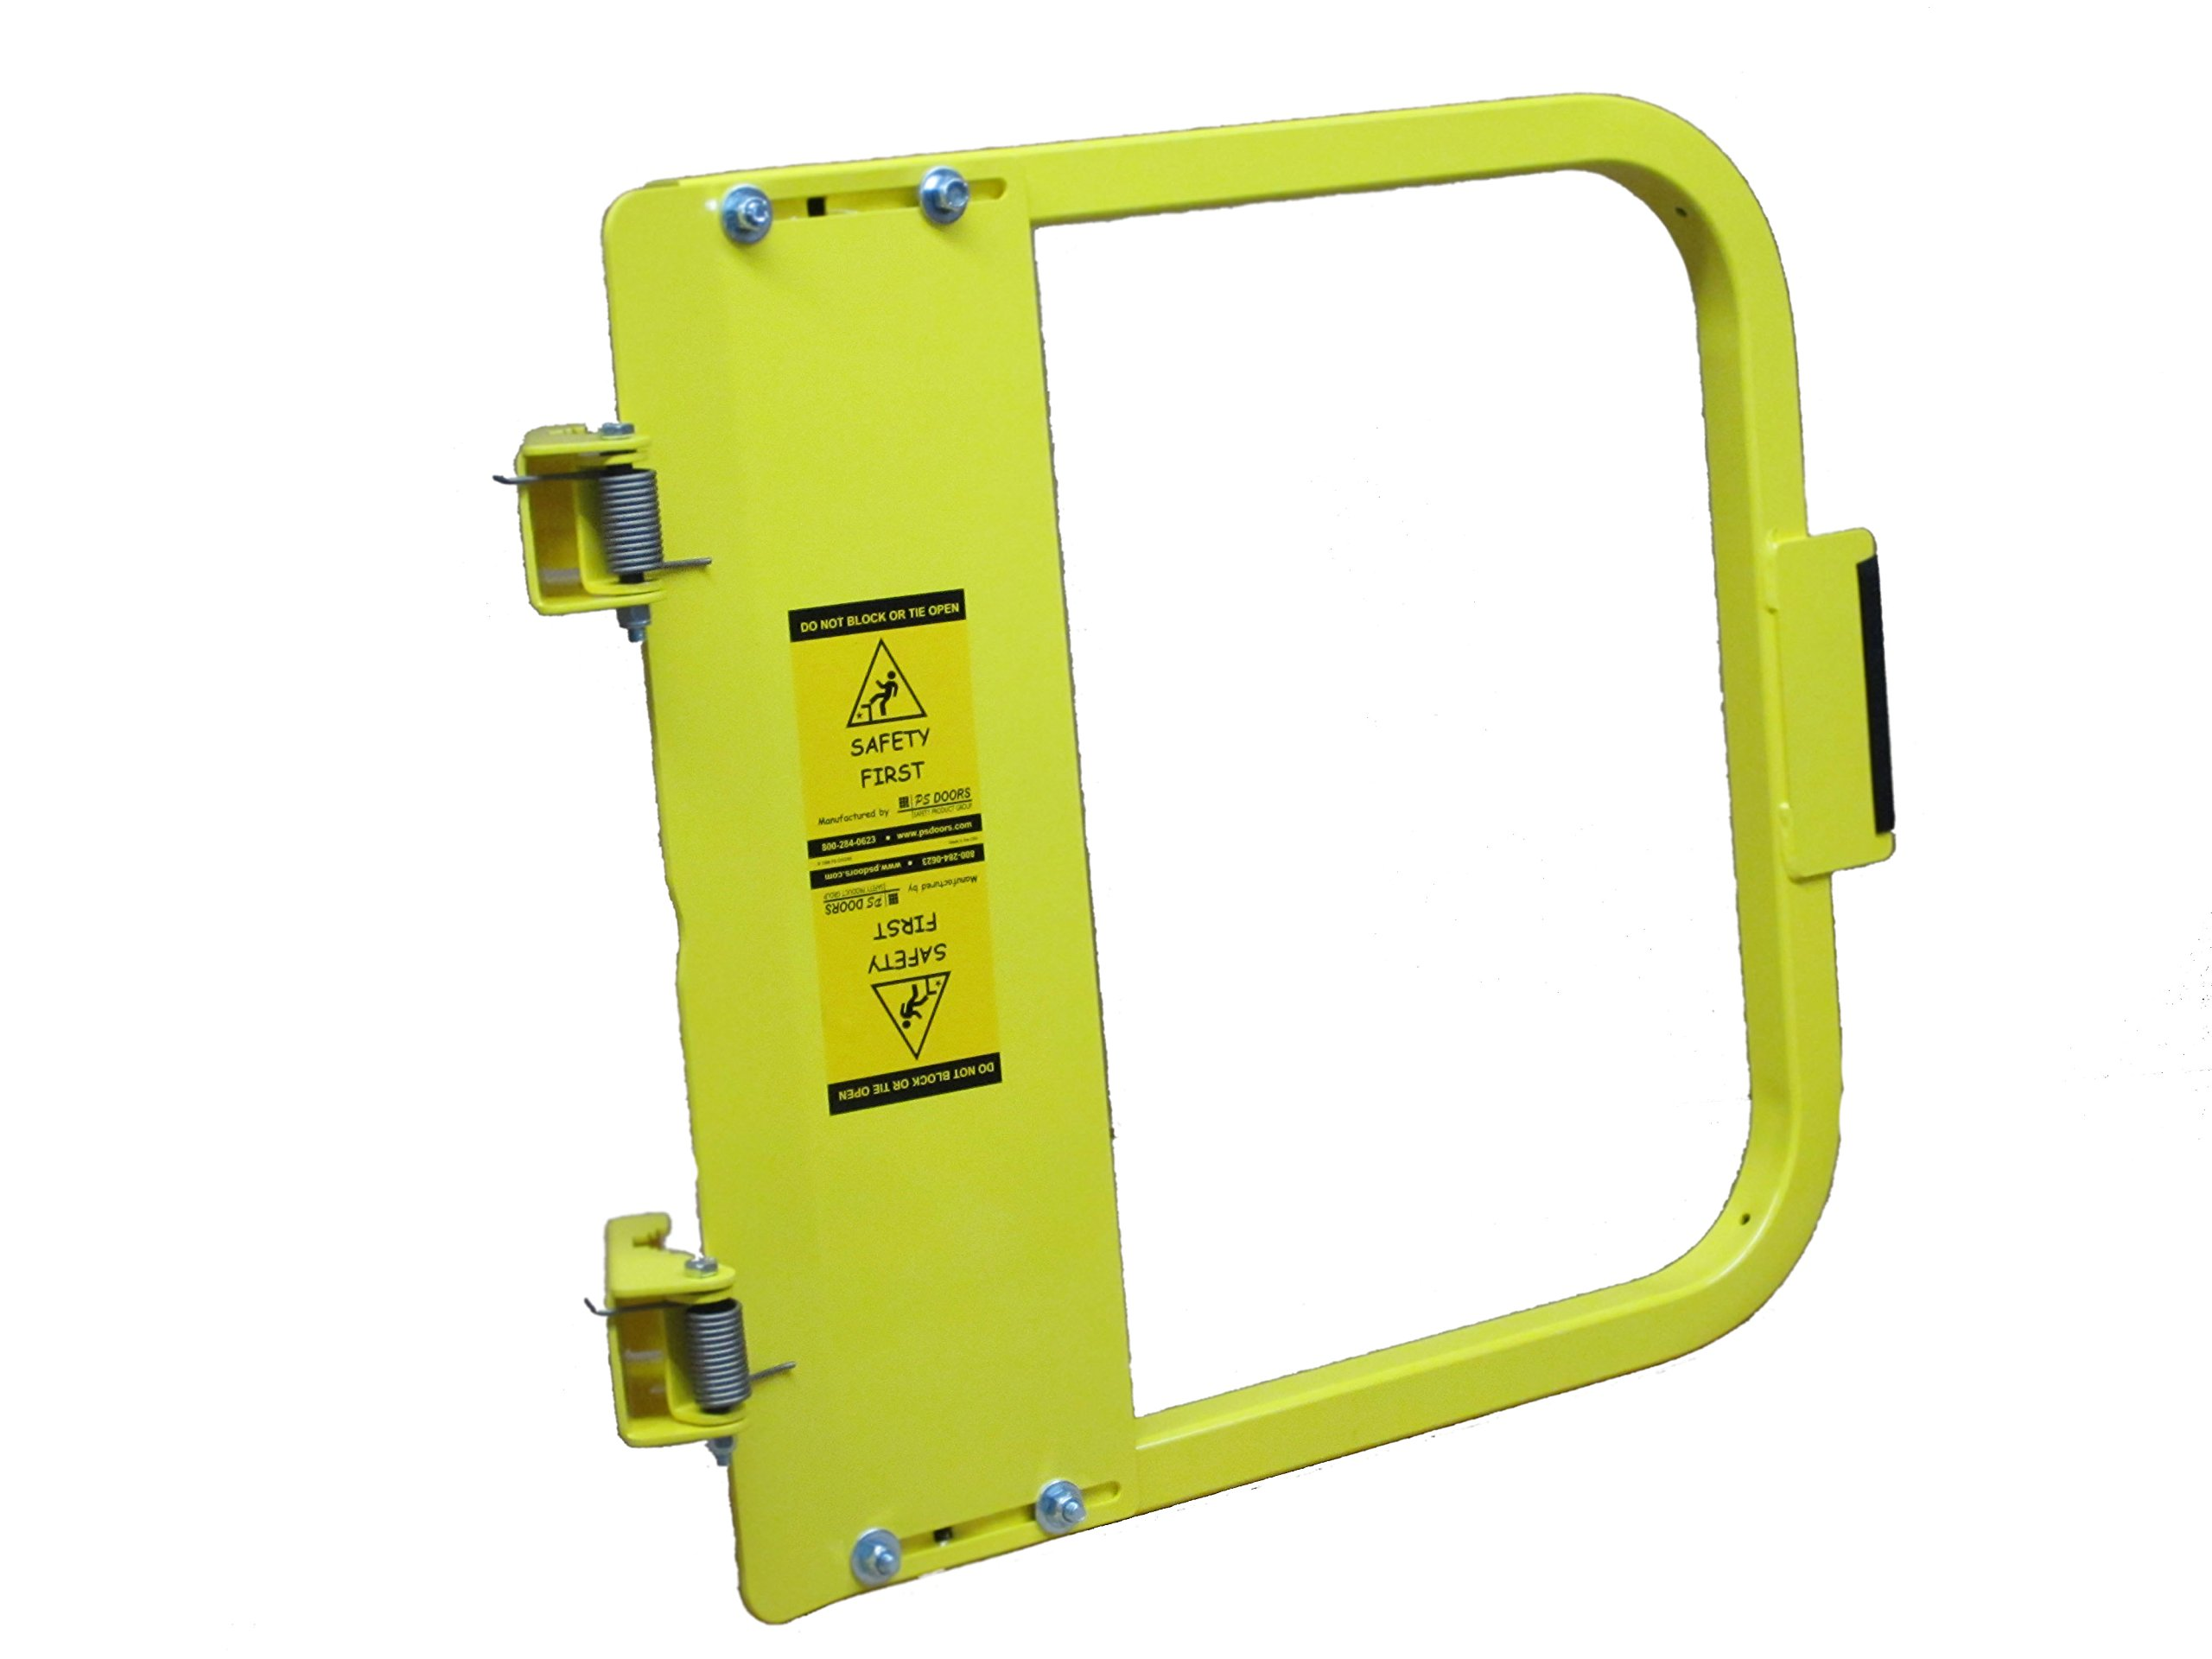 PS DOORS LSG-21-PCY Ladder Safety Gate Mild Carbon Steel, Powder Coat Yellow, Fits Opening 19-3/4'' to 23-1/2'', Each by PS Doors (Image #1)